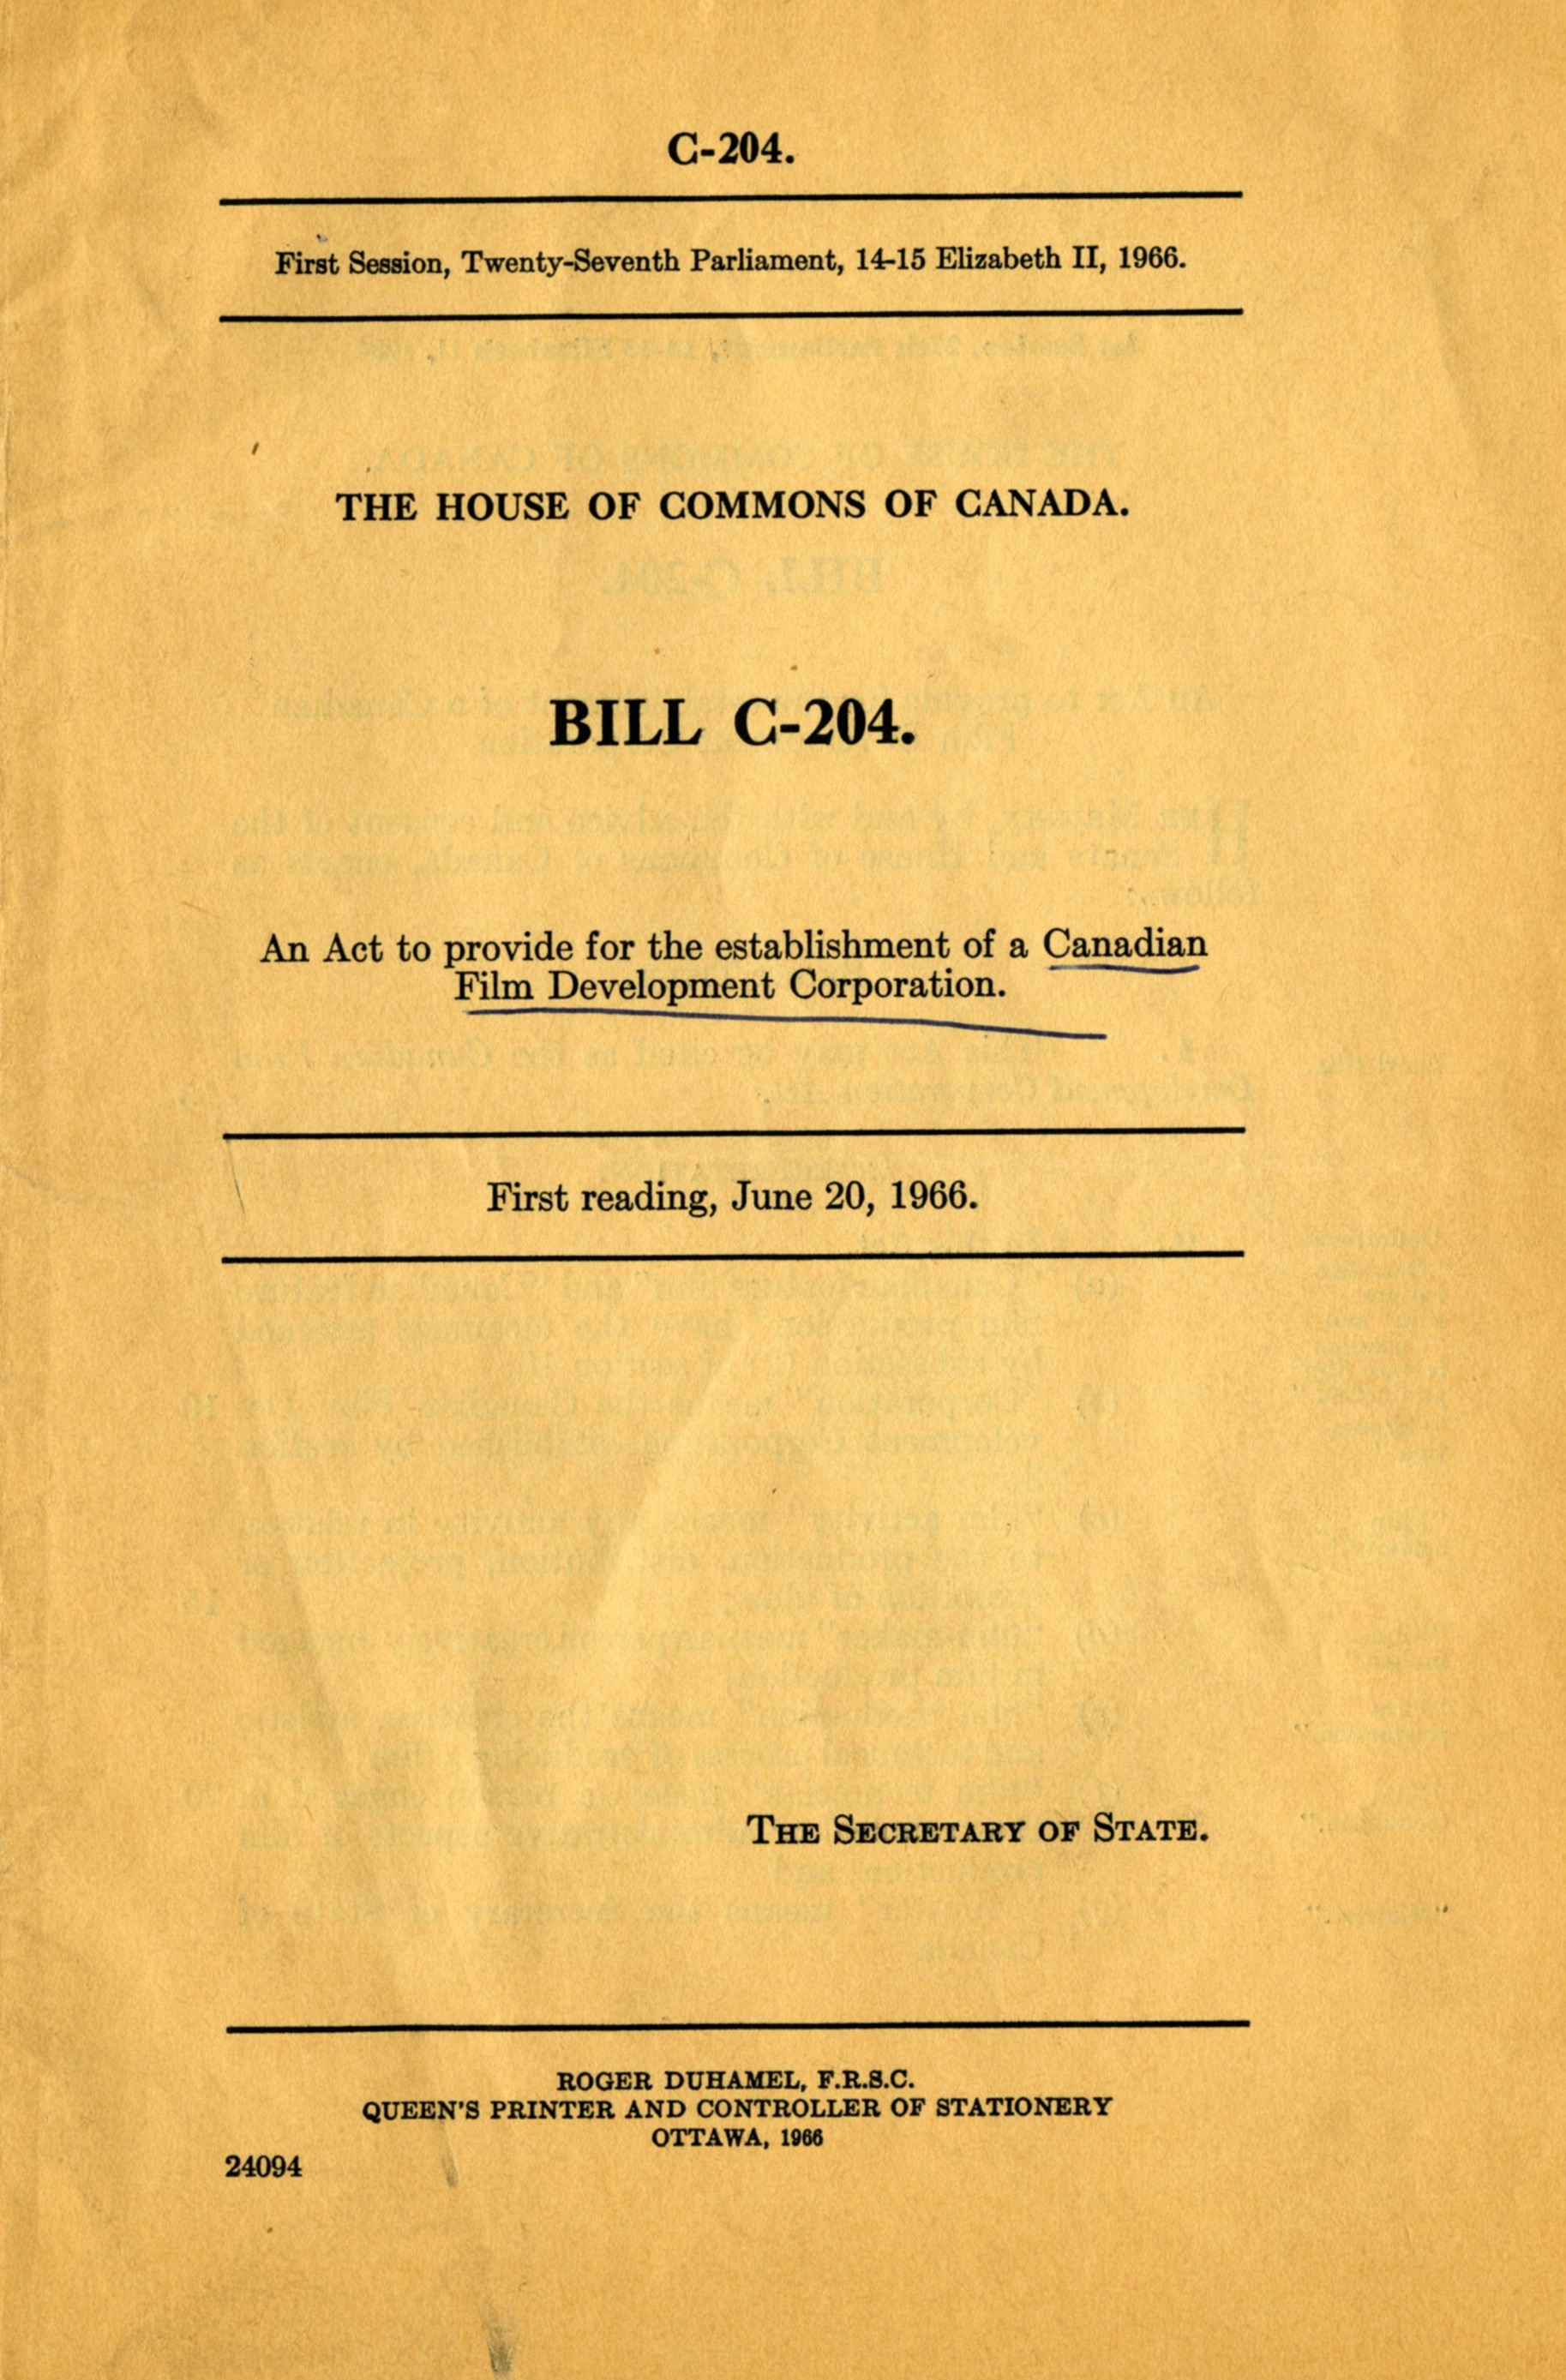 history of the canadian film industry the canadian encyclopedia the white paper for the establishment of the canadian film development corporation cfdc presented for first reading in the house of commons on 20